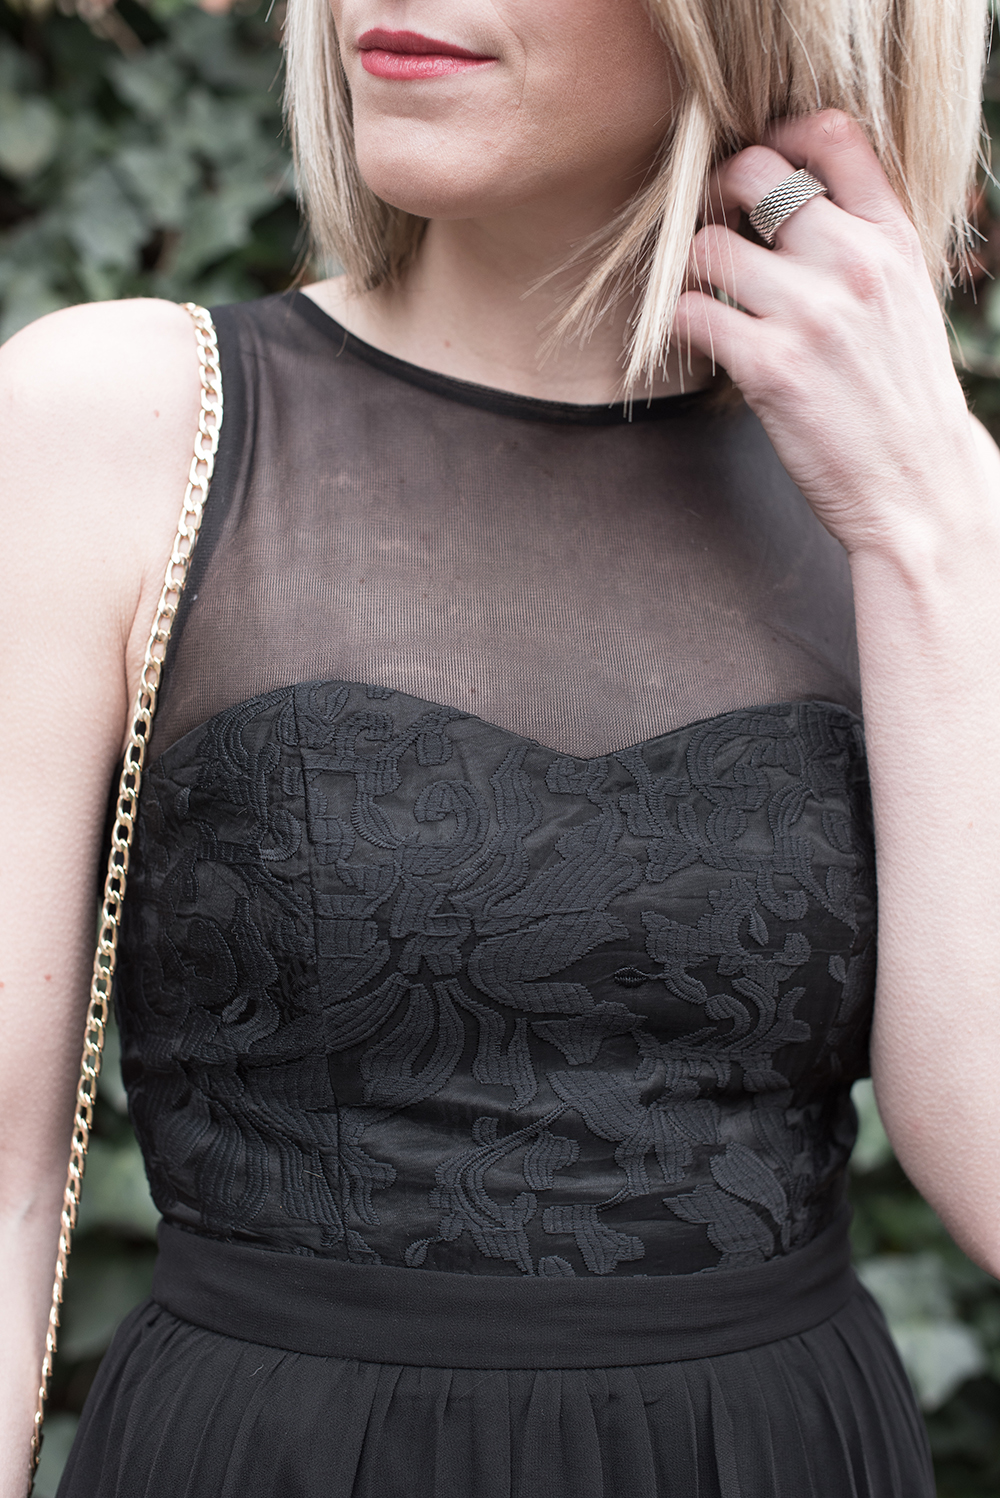 Embroidered Details, Black Maxi